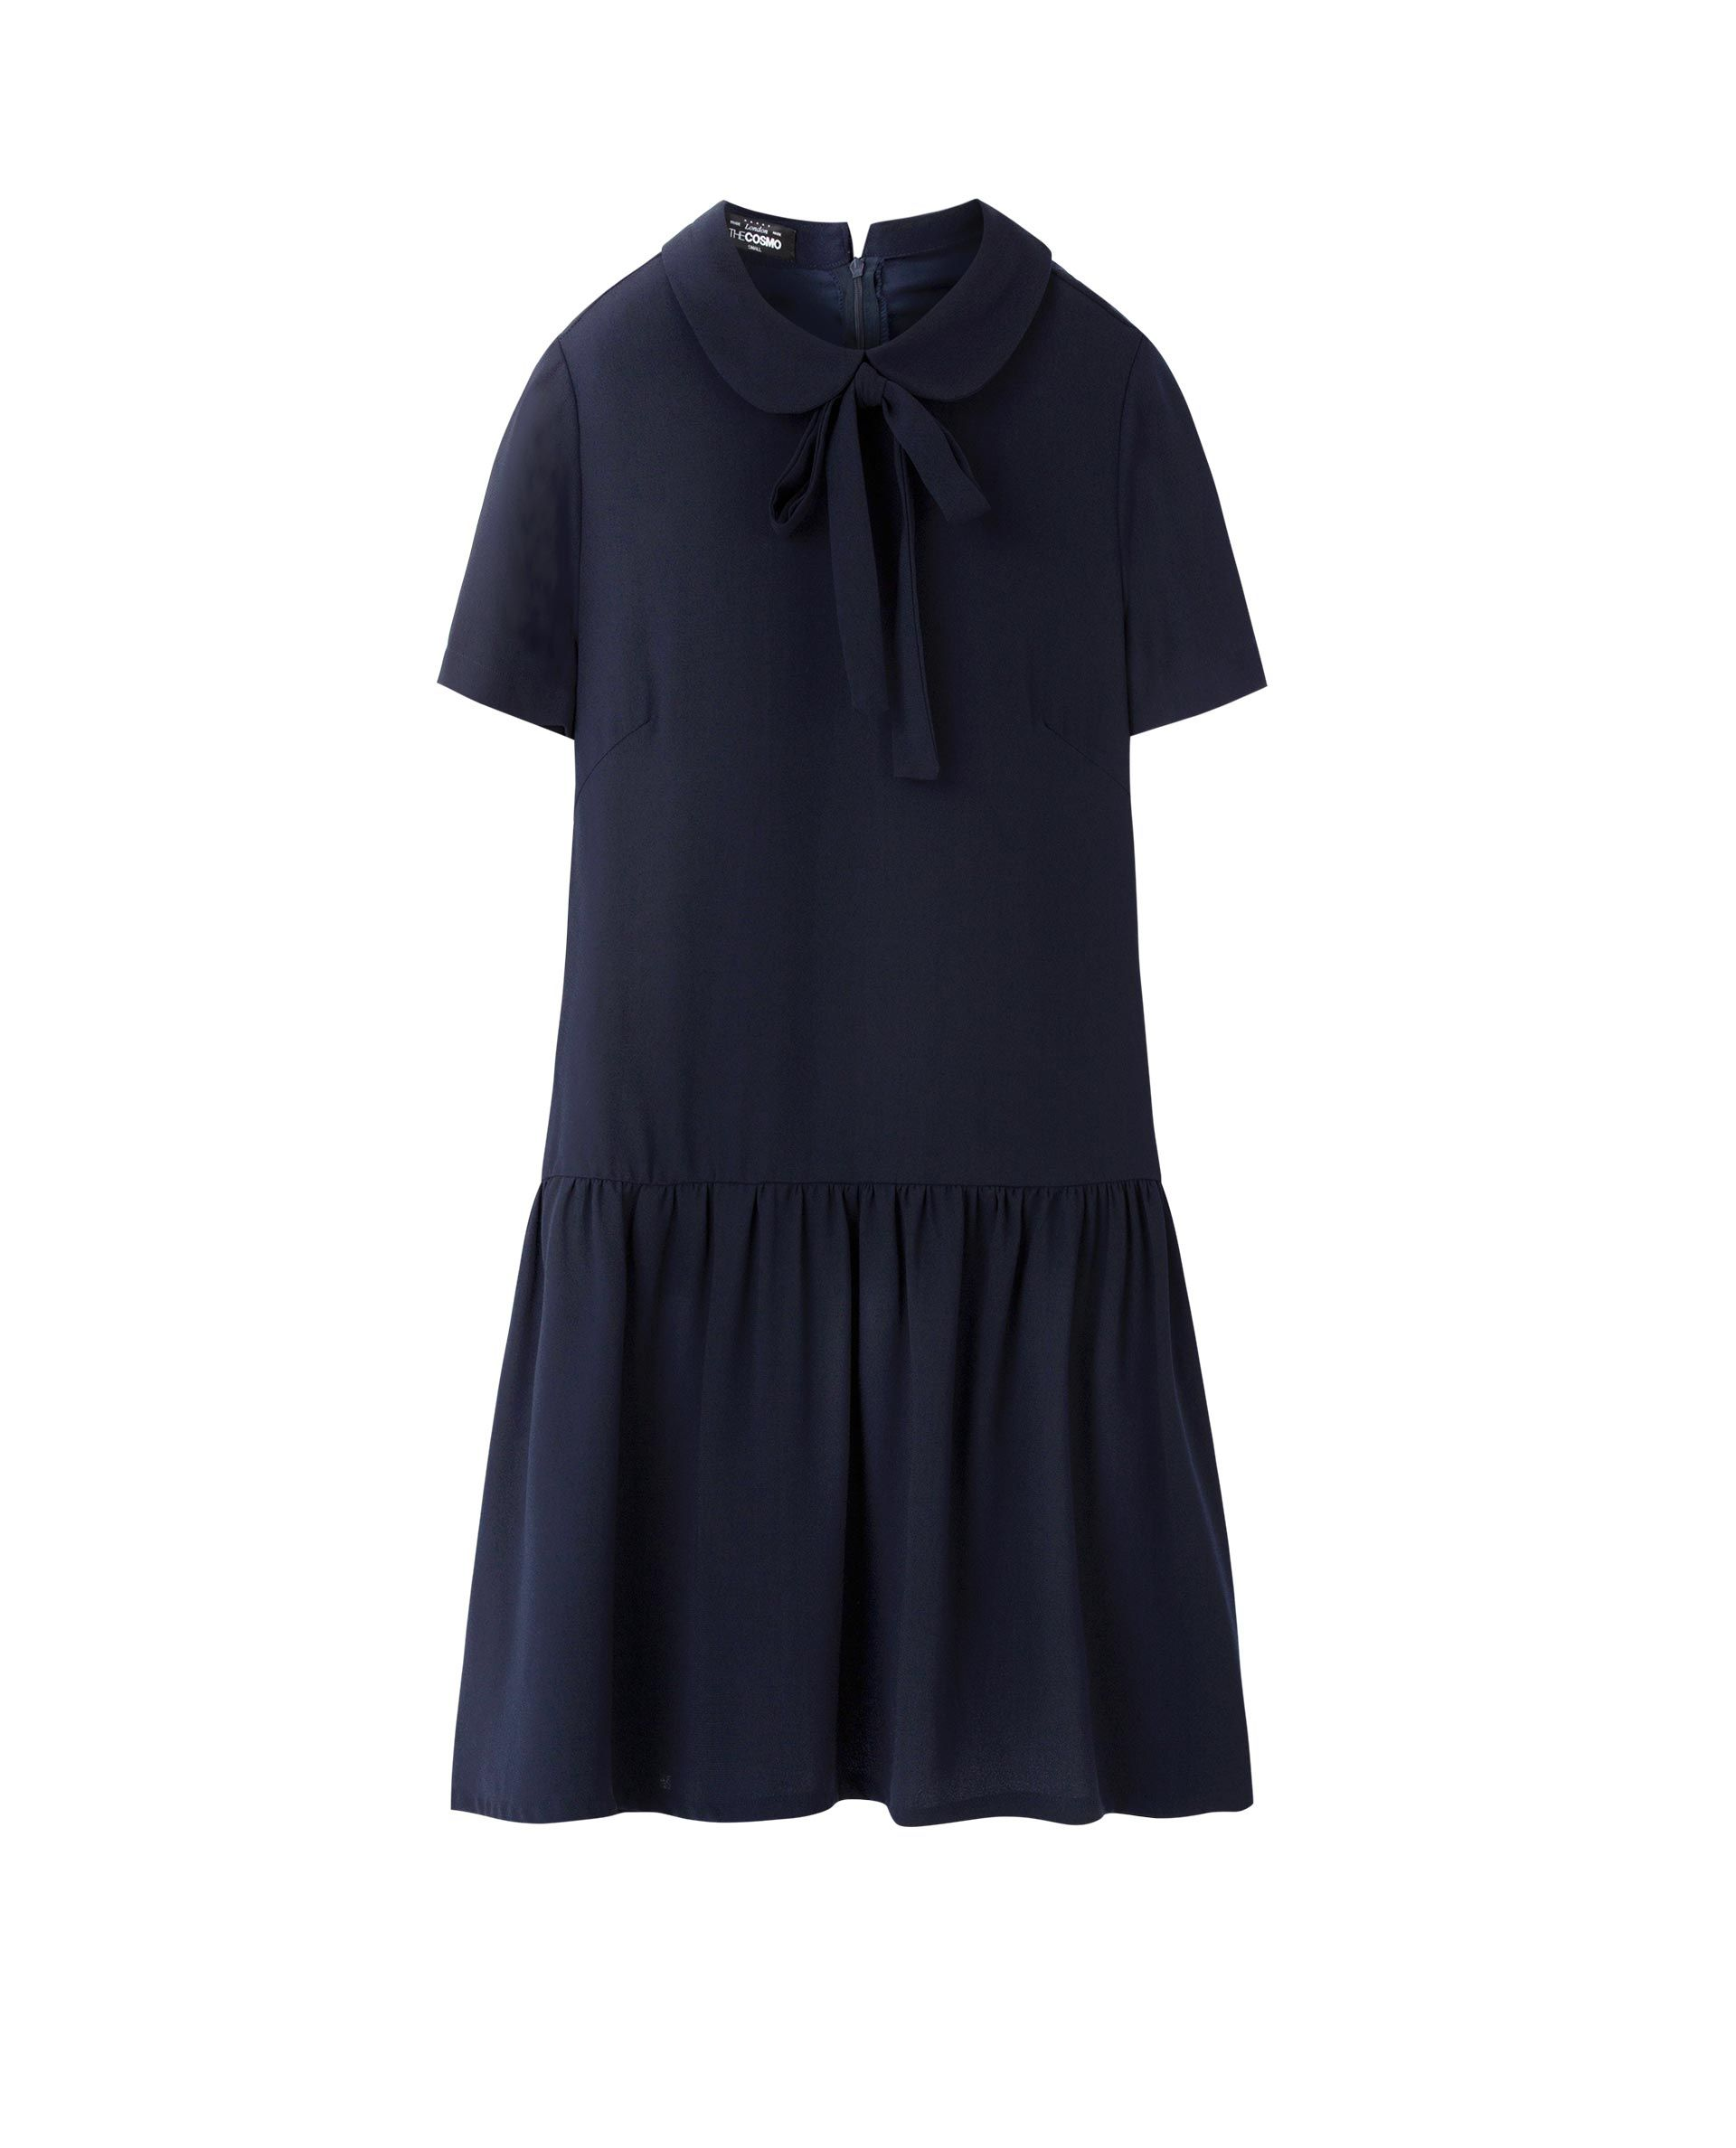 BONNIE DRESS (NAVY)